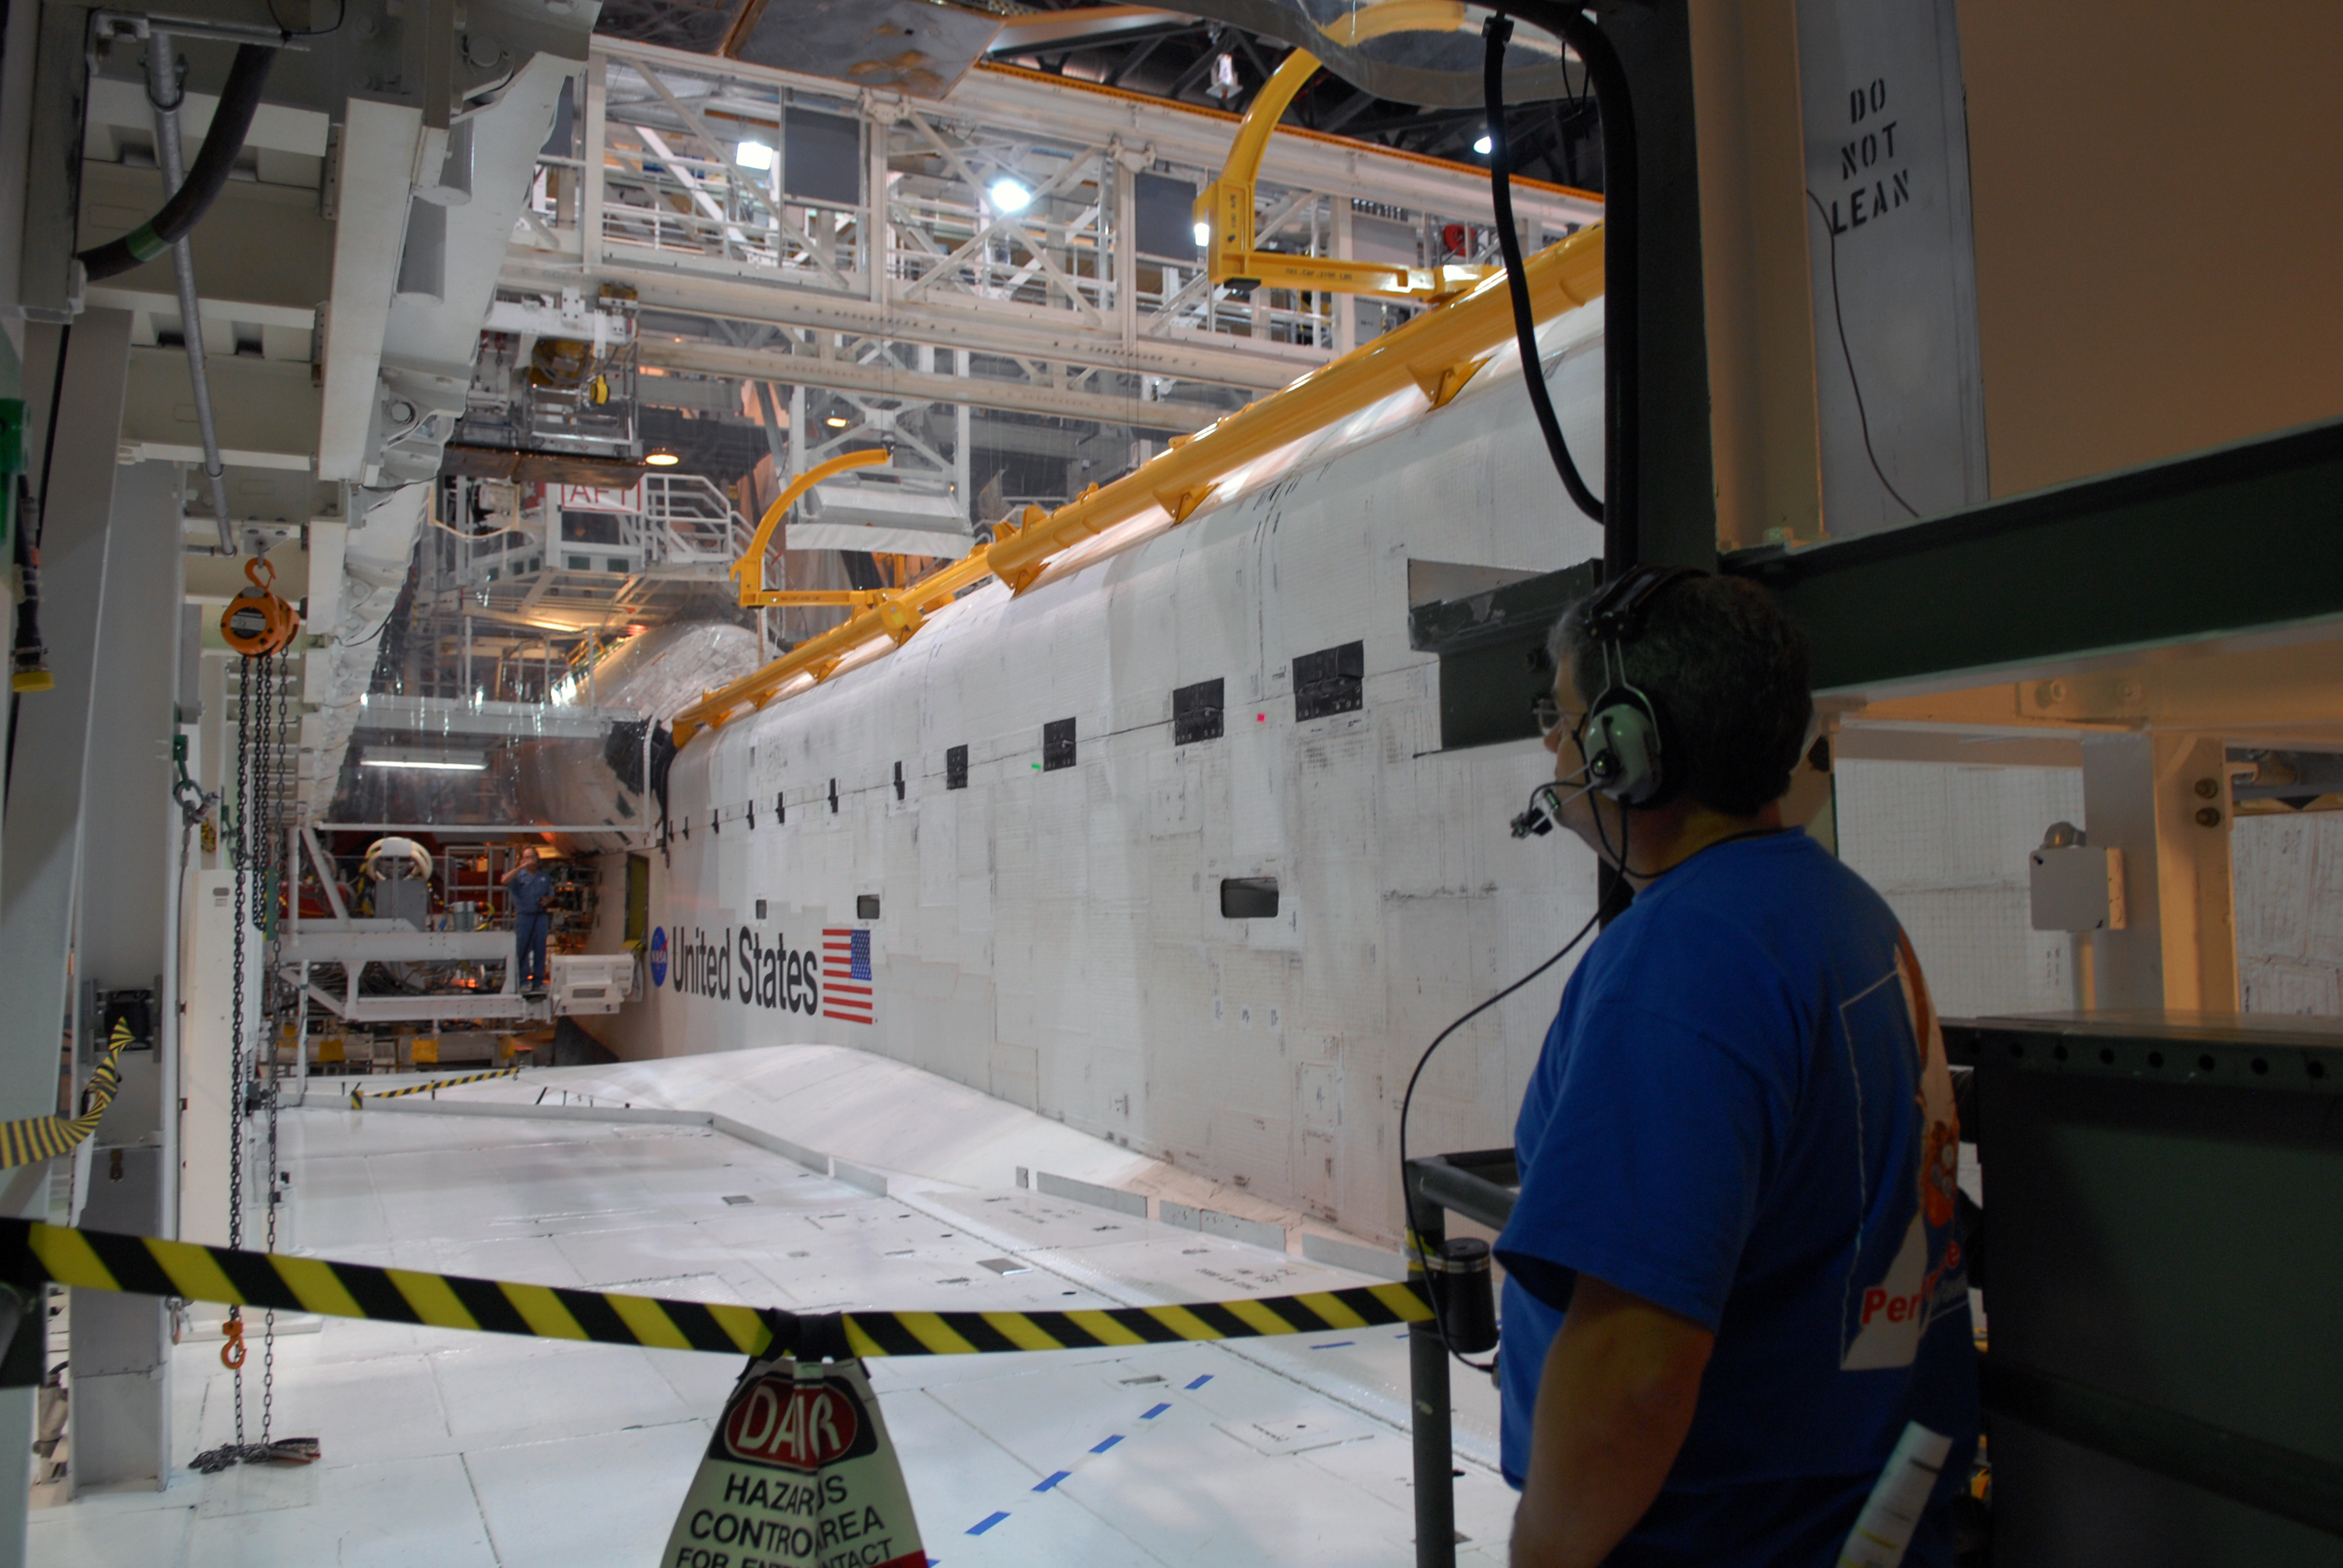 space shuttle payload bay doors - photo #14